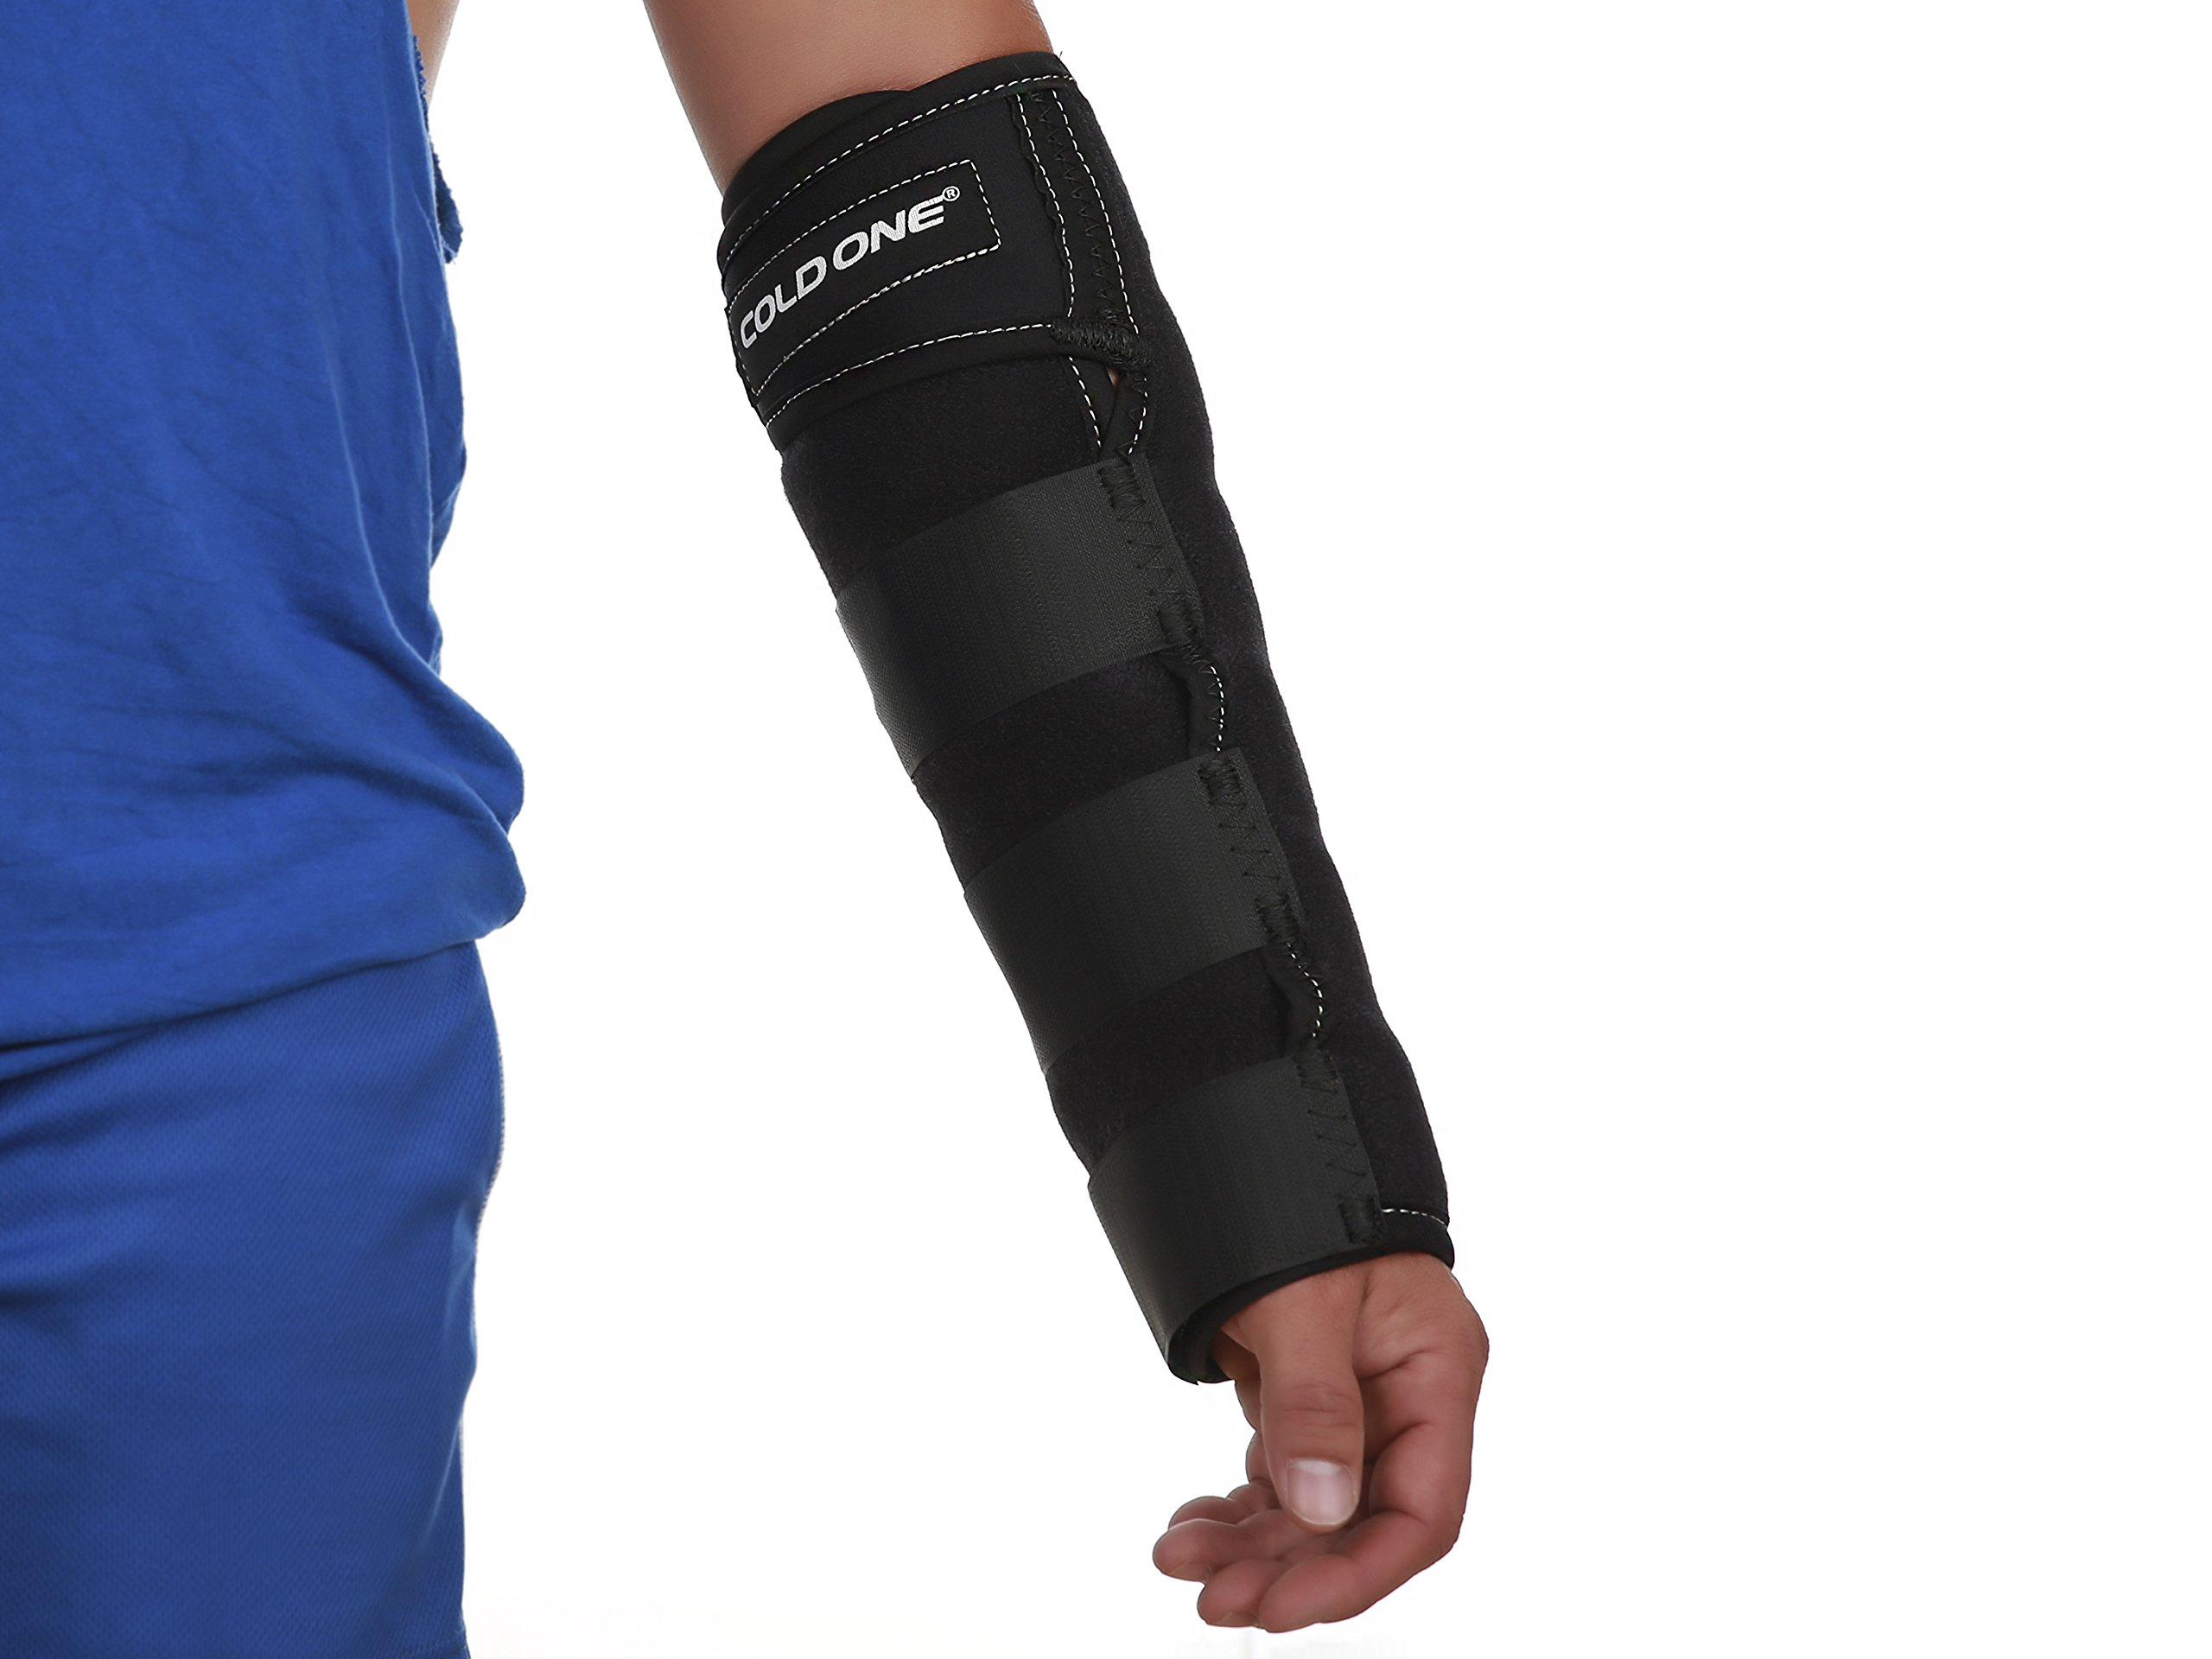 Forearm Ice Compression Wraps - Large (over 6'4'' or 260 lbs) by Cold One